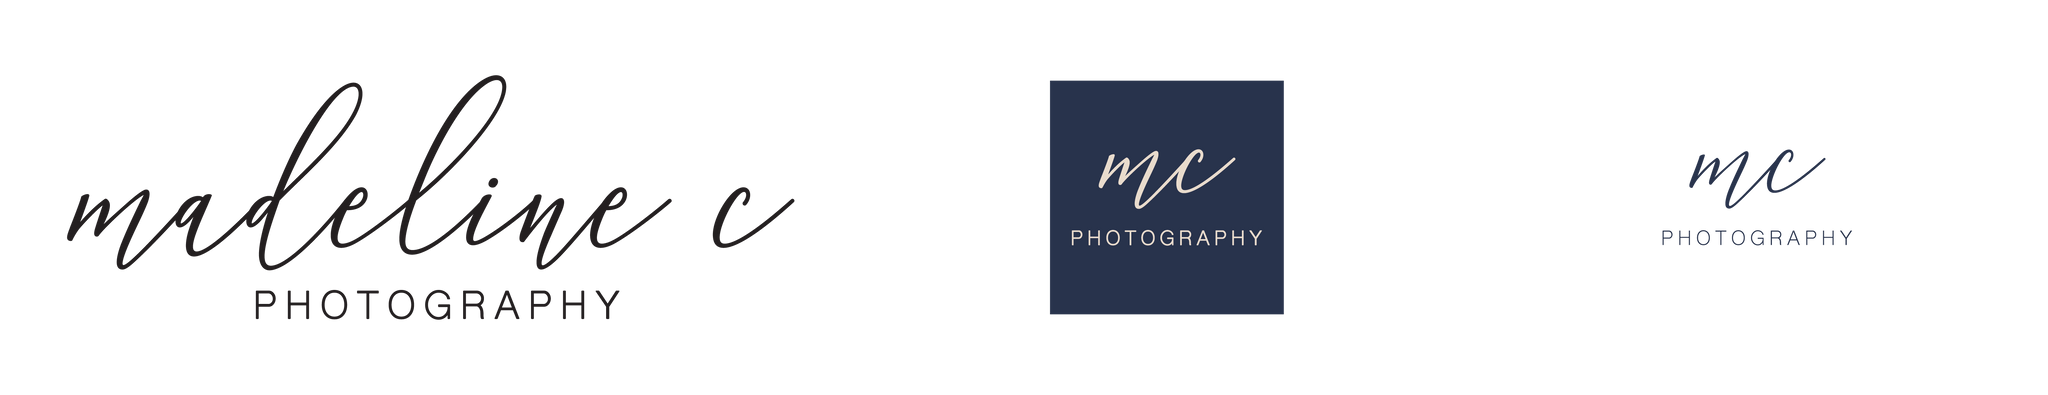 Madeline C Photography logo, 24th Ave Designs logo design